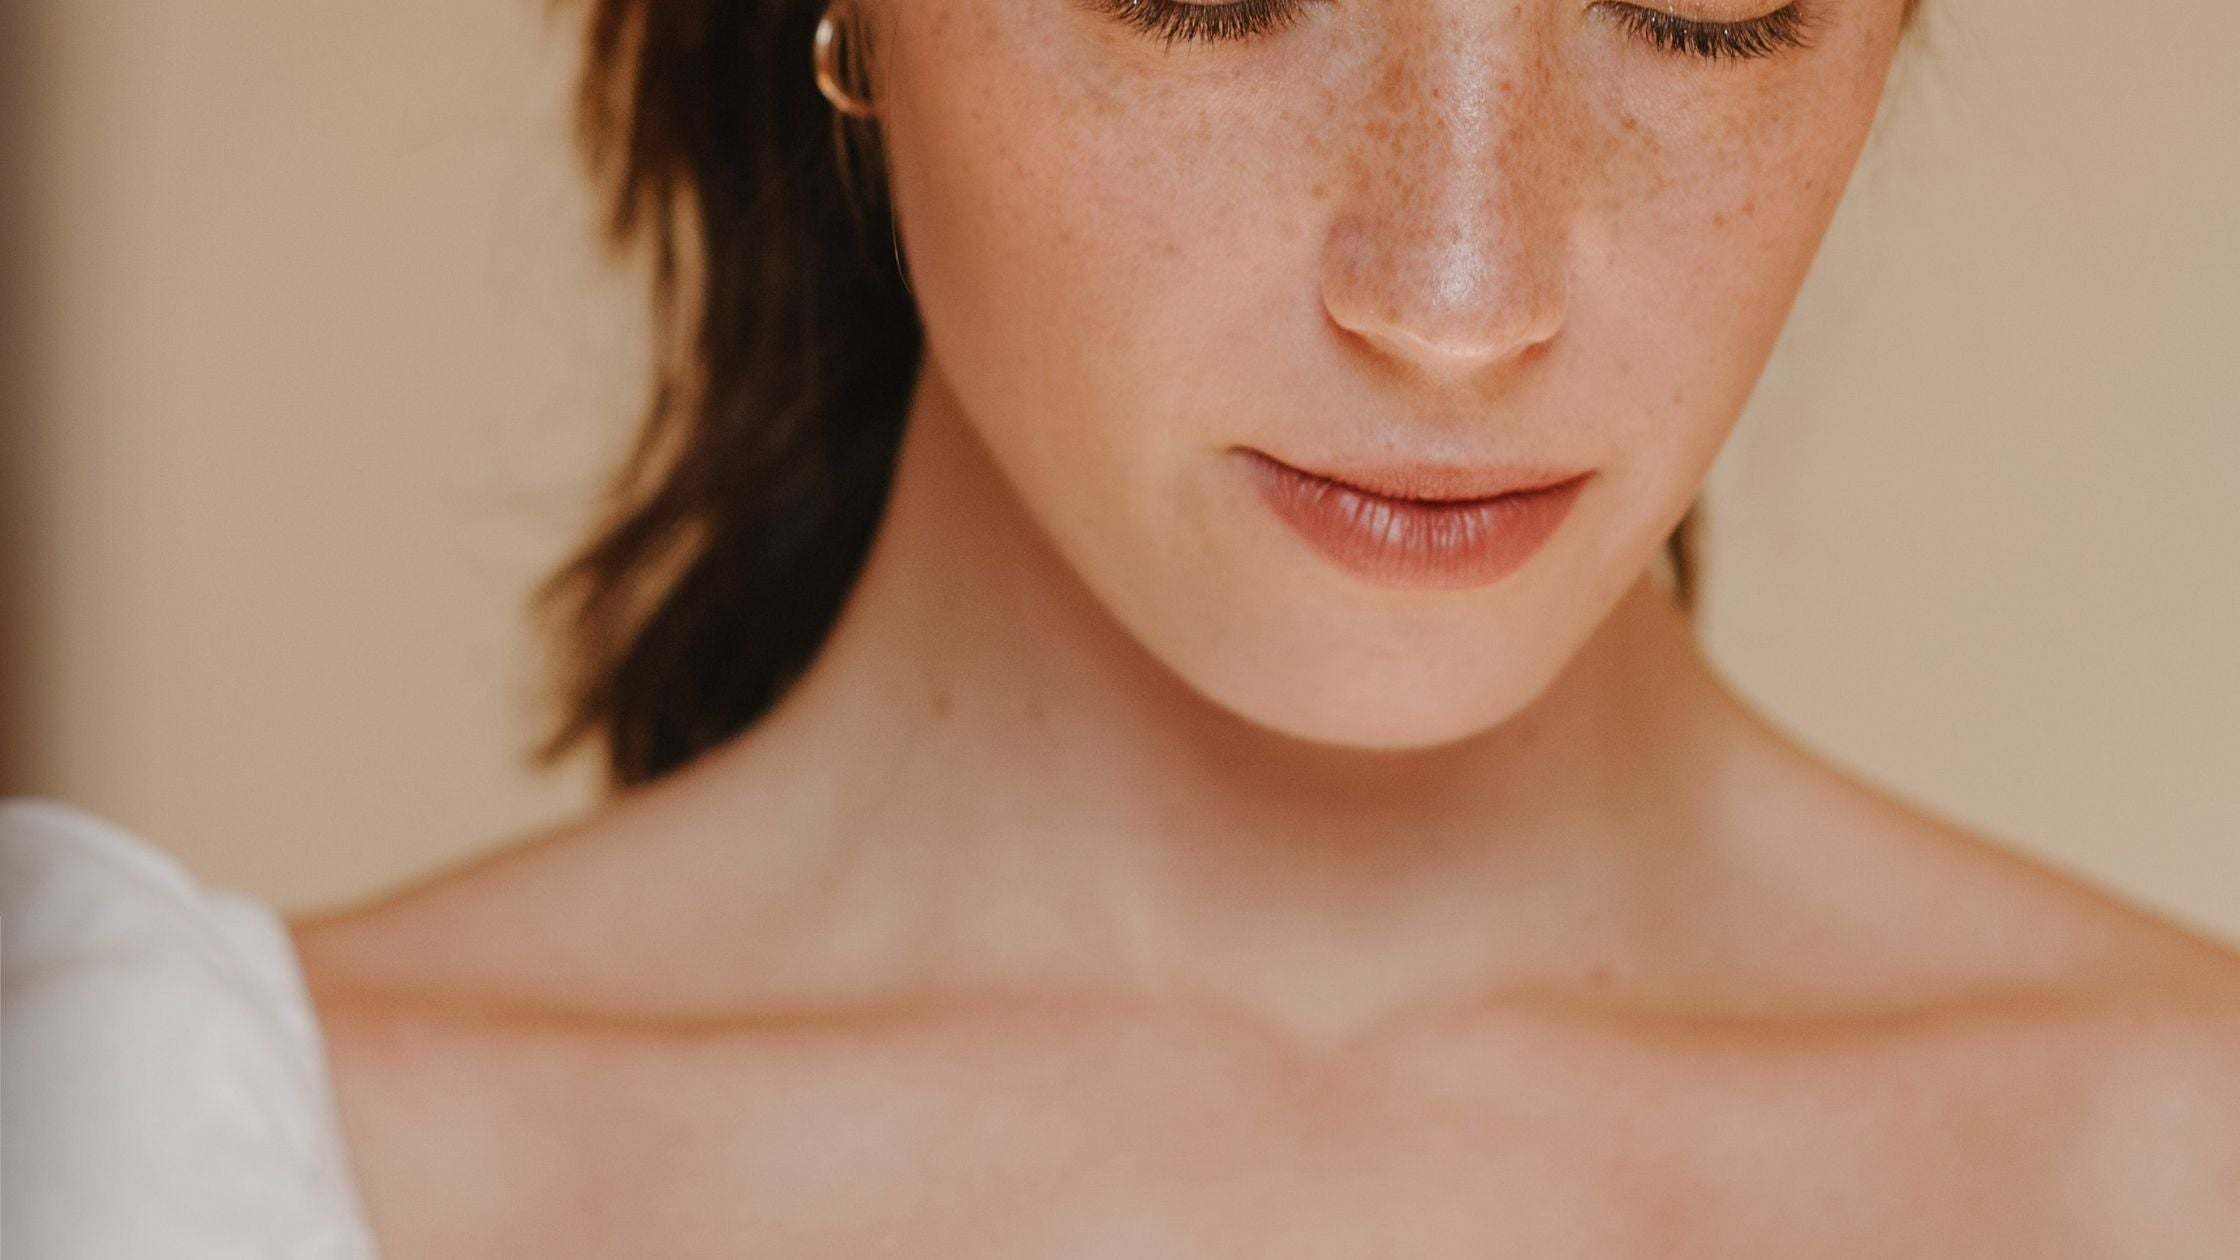 Causes of Melasma and how to treat it